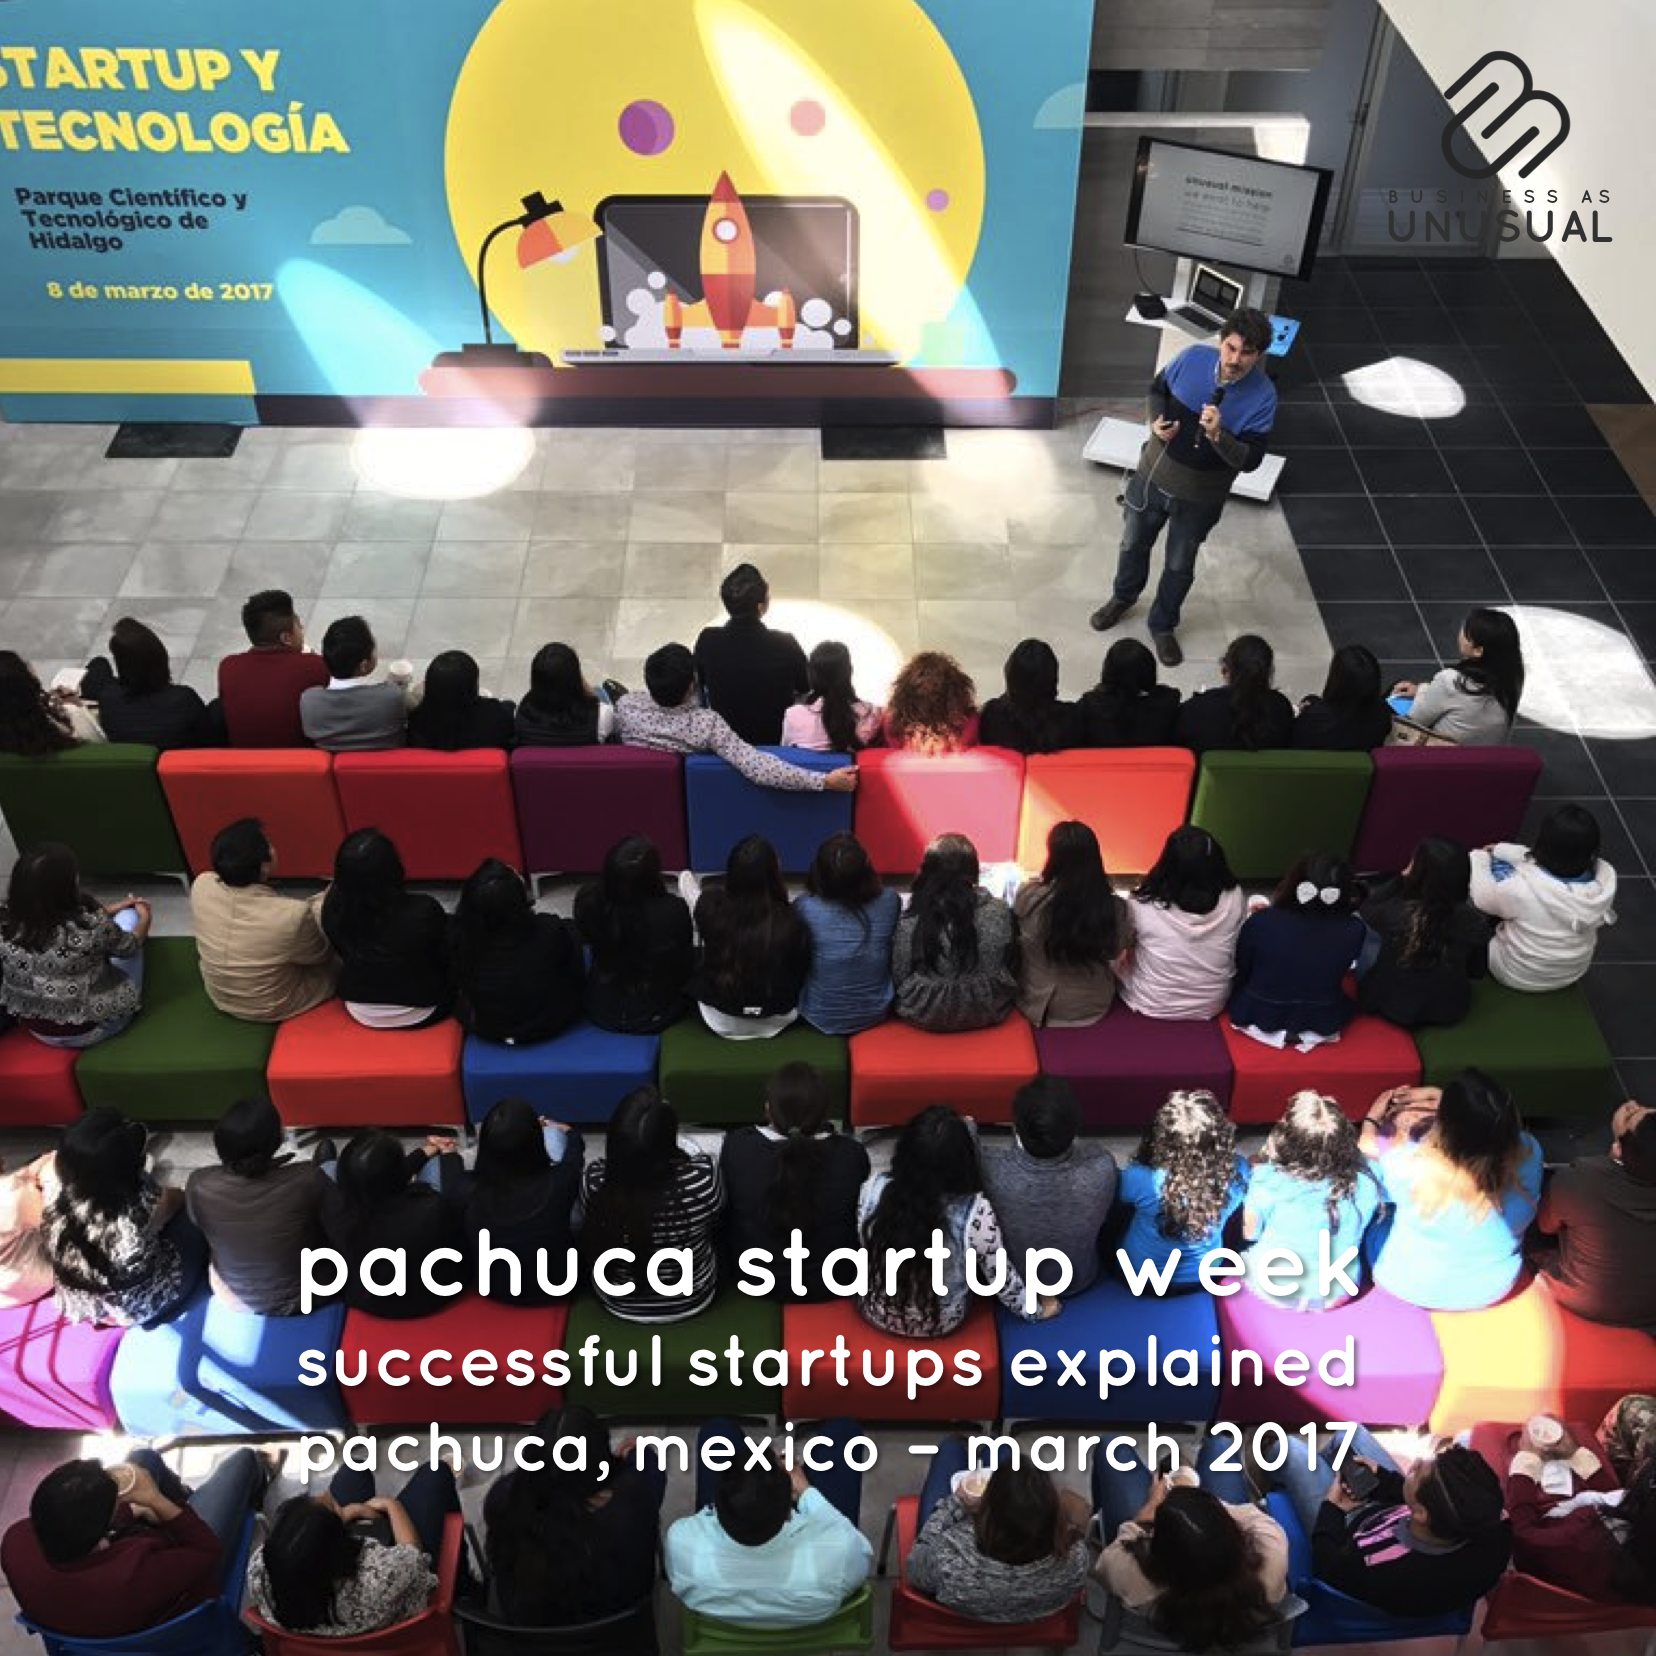 Pachuca Startup Week - Successful Startups Explained - Pachuca - March 2017